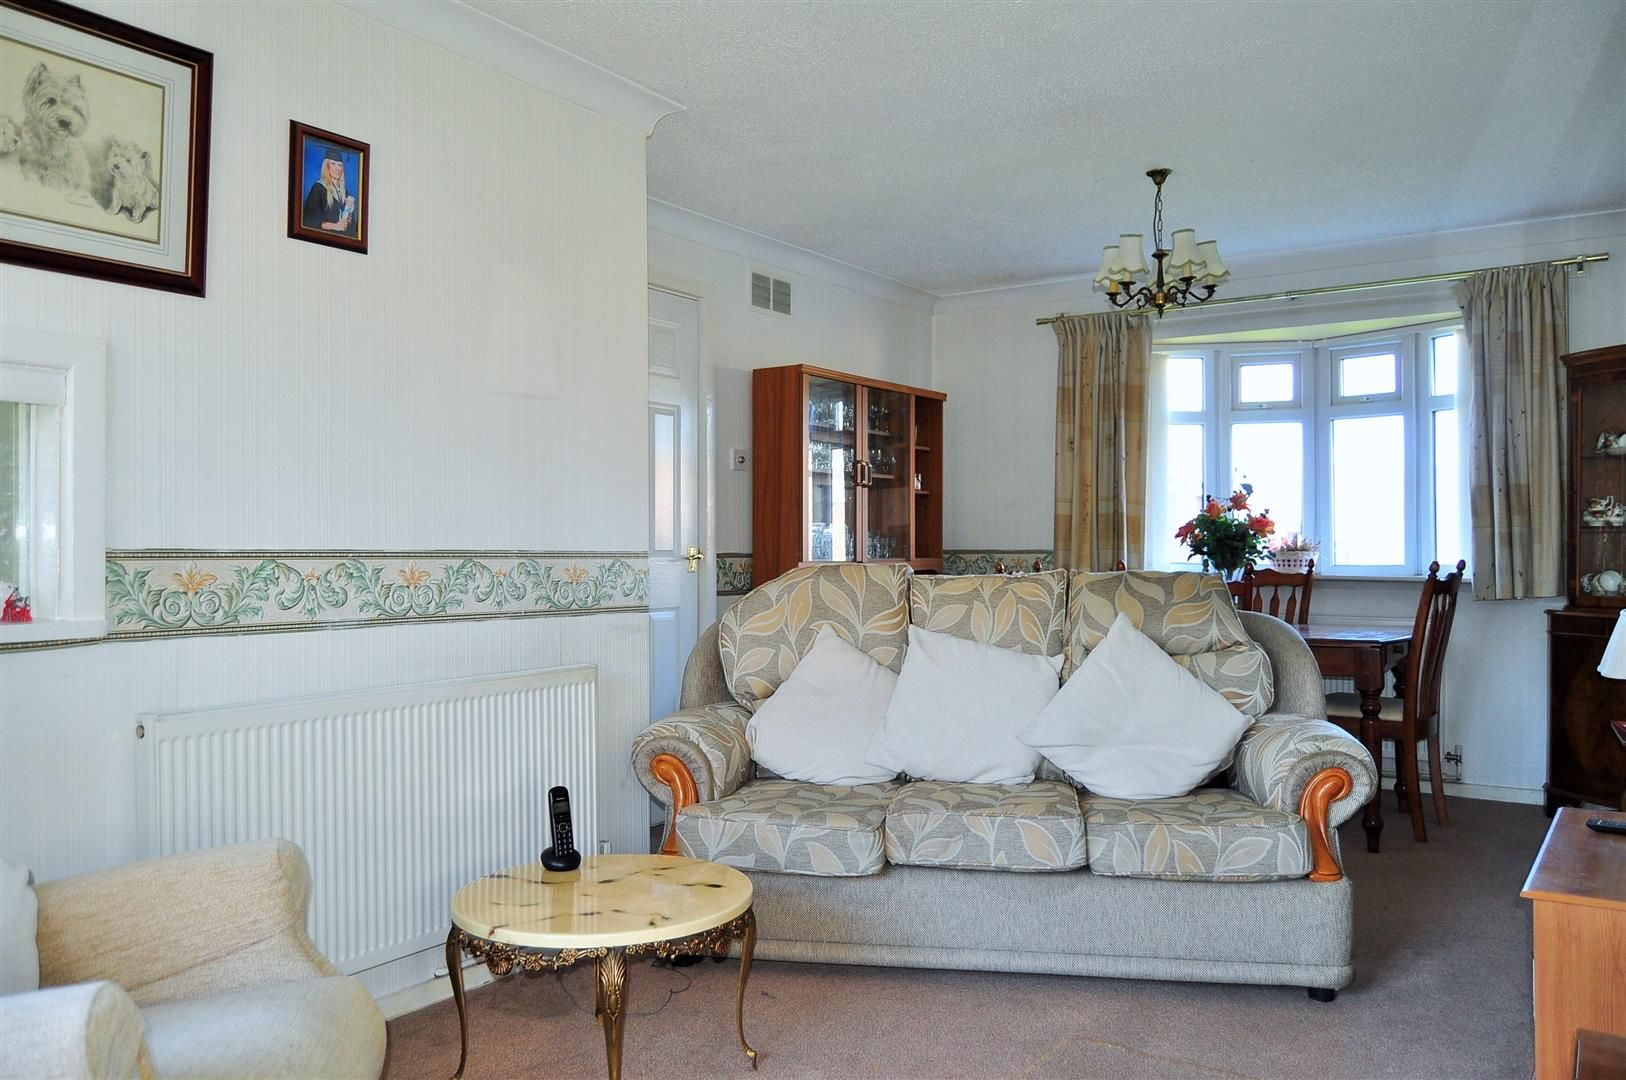 3 bed end-of-terrace for sale  - Property Image 3